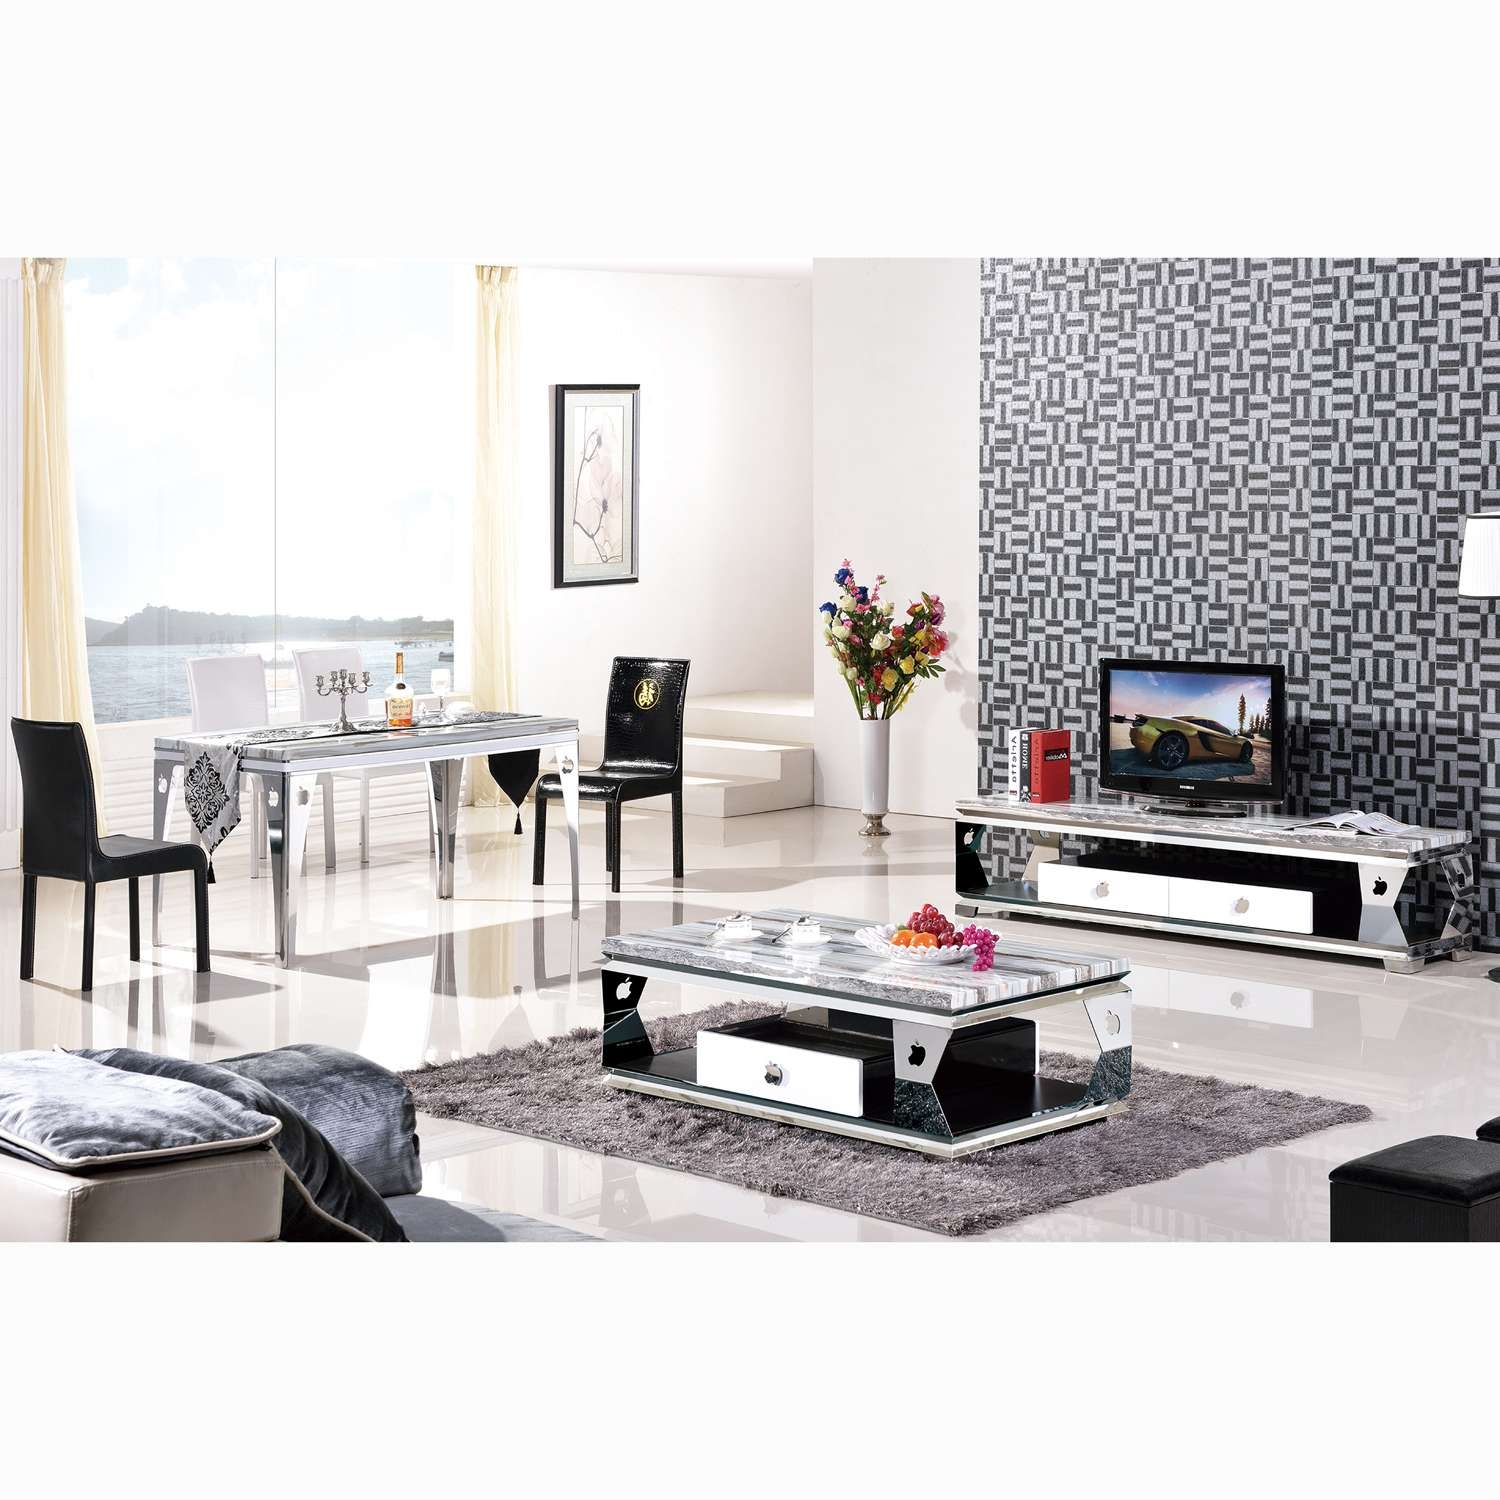 High Grade Stainless Steel Apple Tv Cabinet Marble Coffee Table Intended For Coffee Tables And Tv Stands Matching (View 7 of 15)